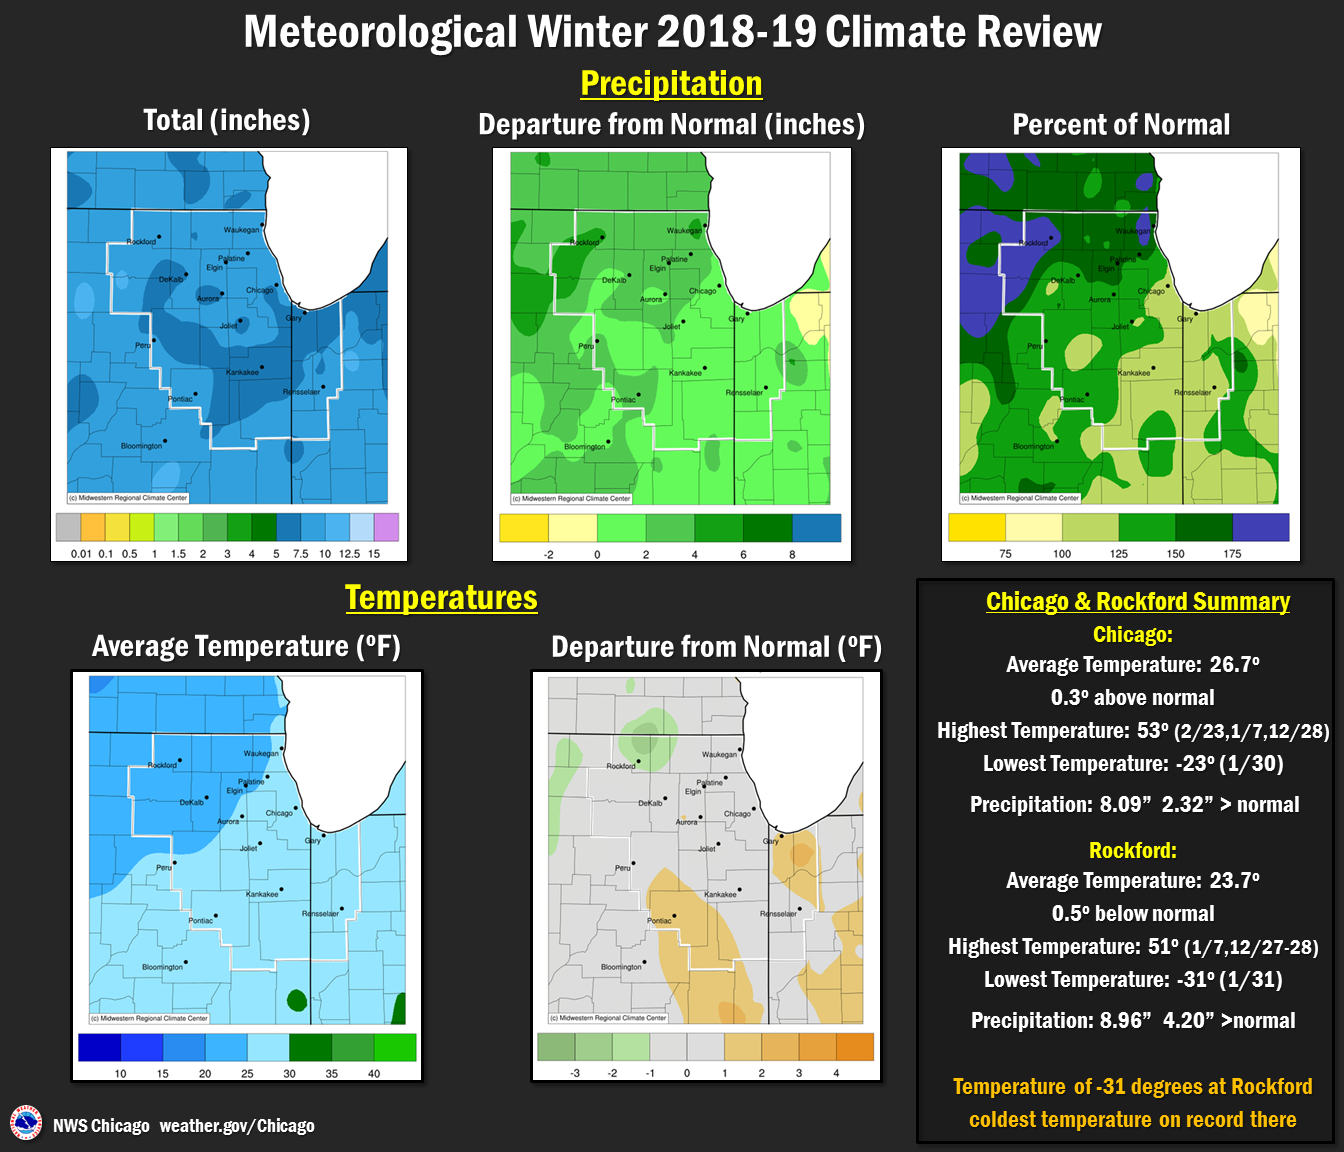 Winter 2018-19 Precip and Temps Review